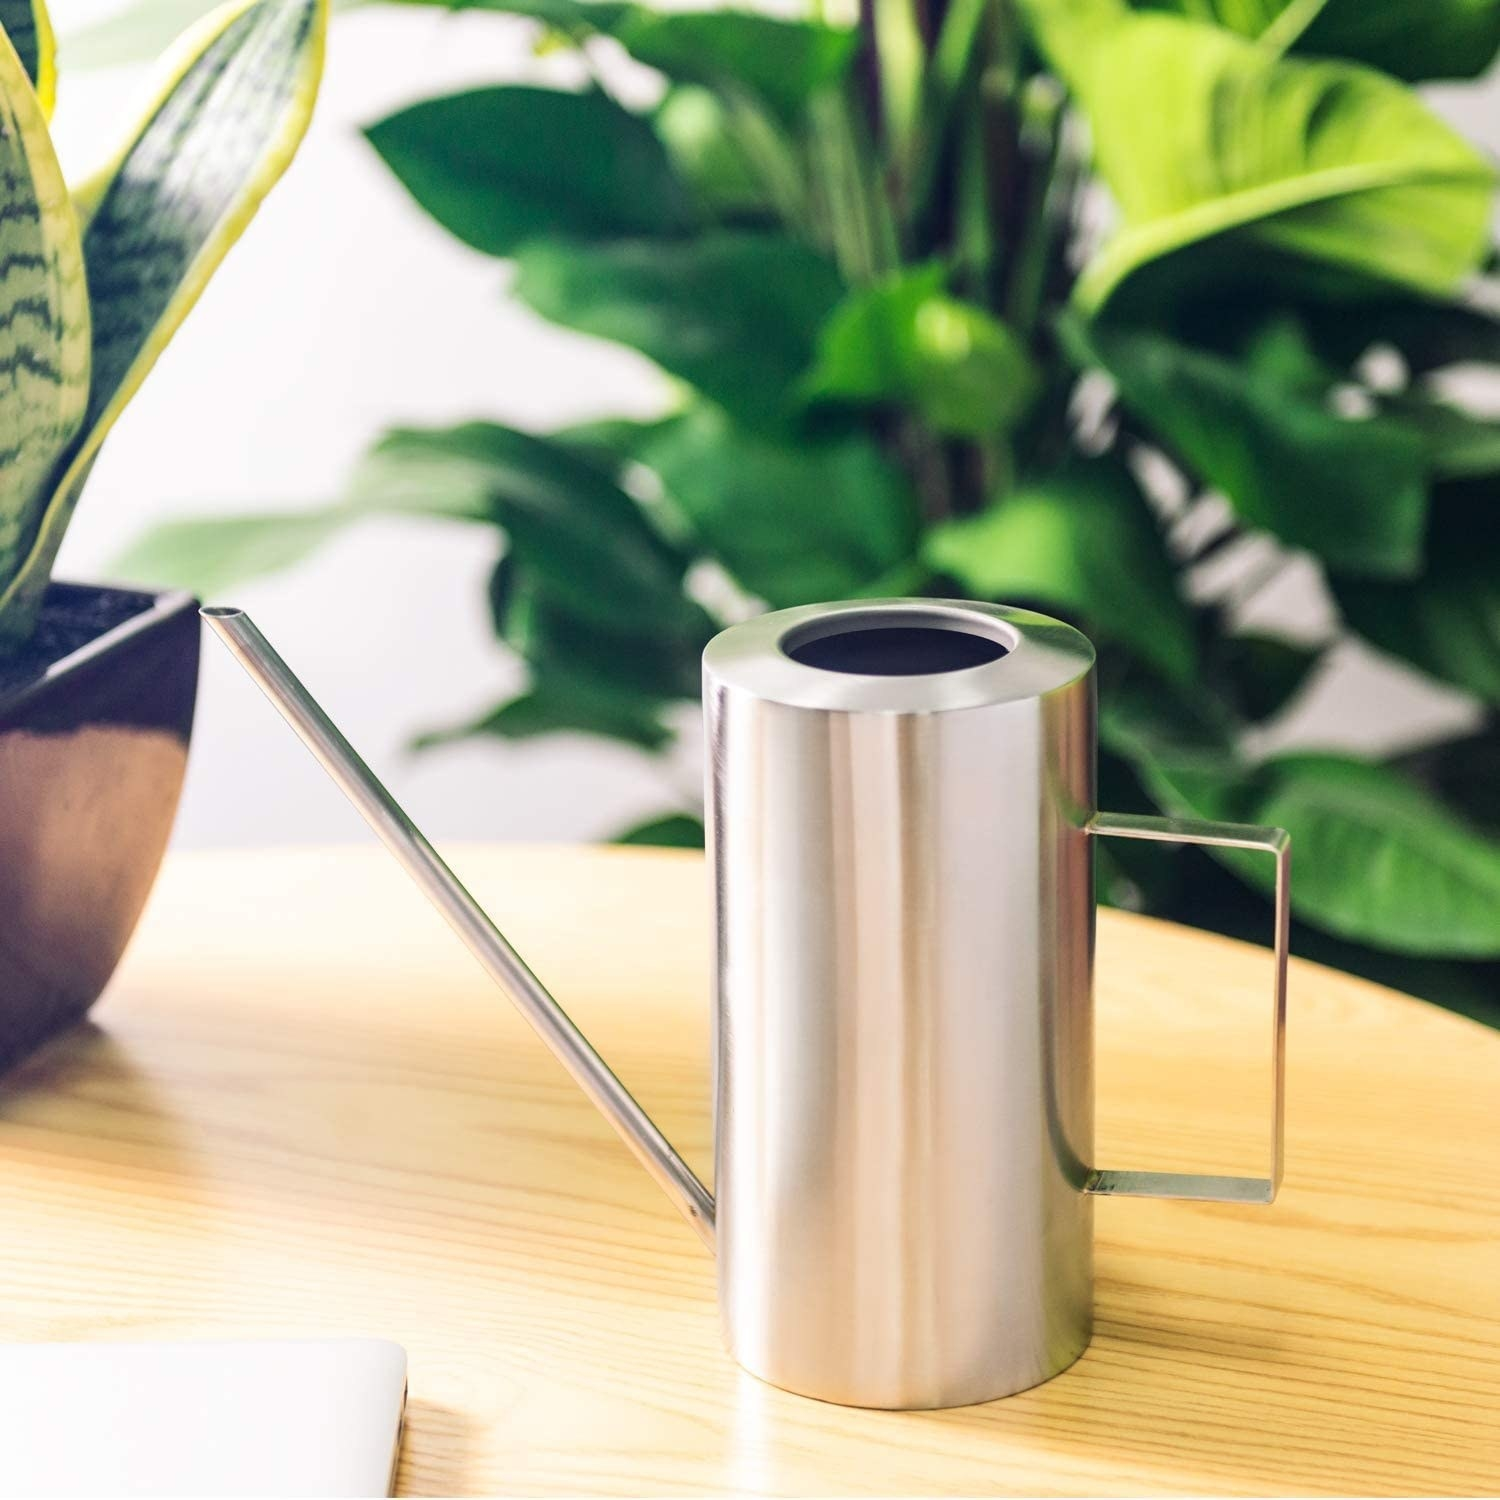 The stainless steel watering can with a long spout on a table next to a plant